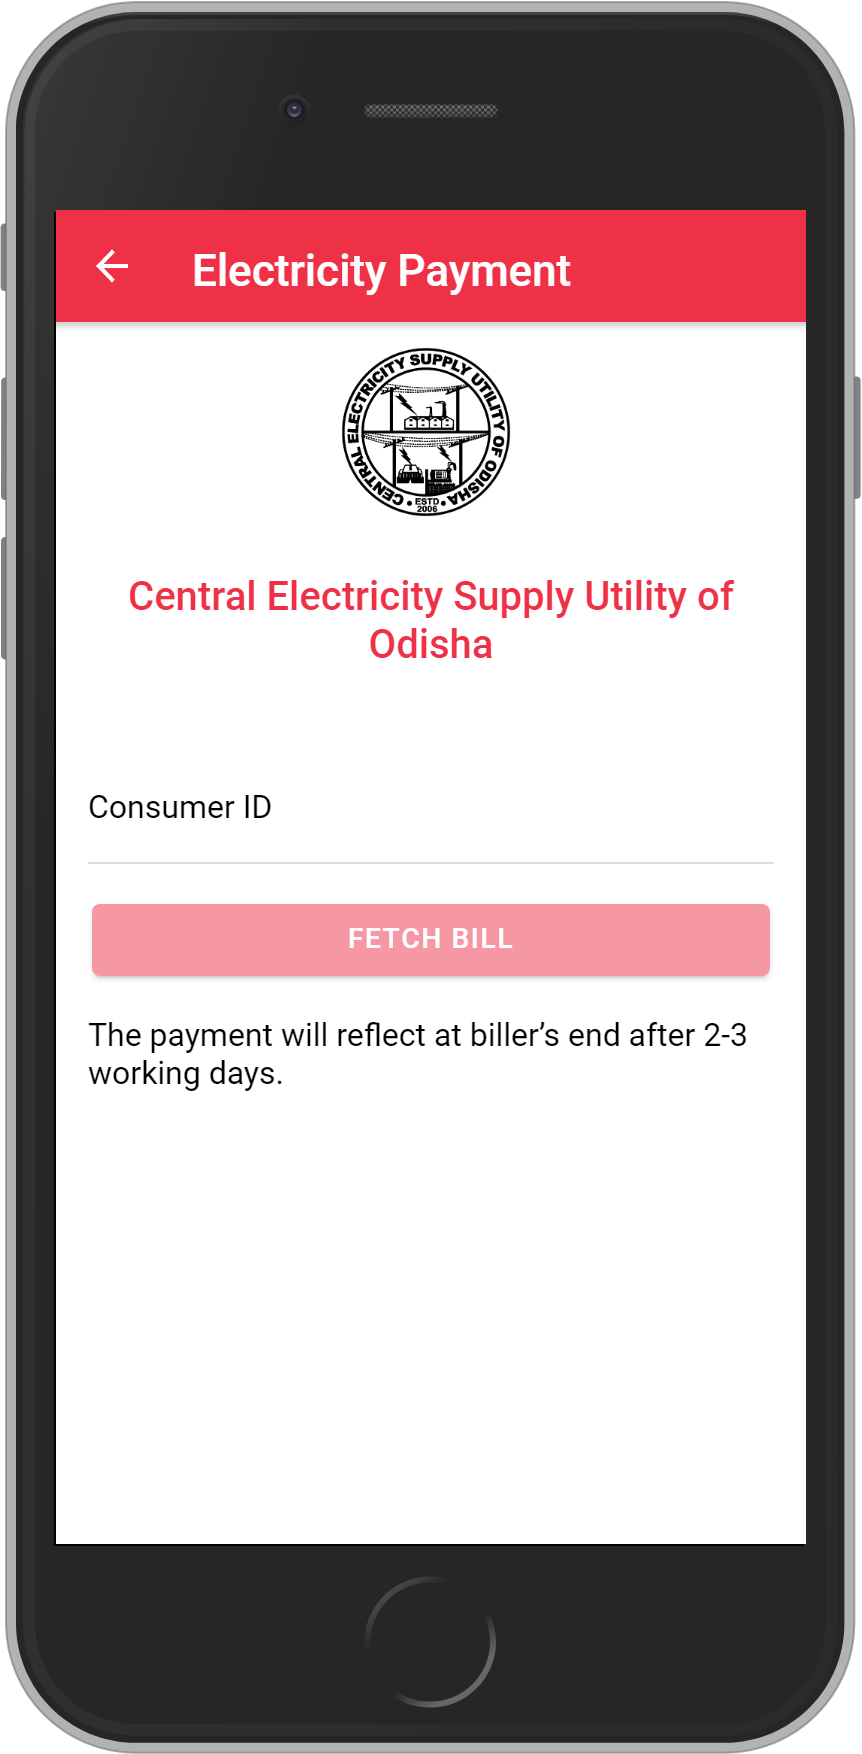 Get UNLIMITED <b>0.1%</b> CASHBACK on Central Electricity Supply Utility of Odisha Bill Payment.